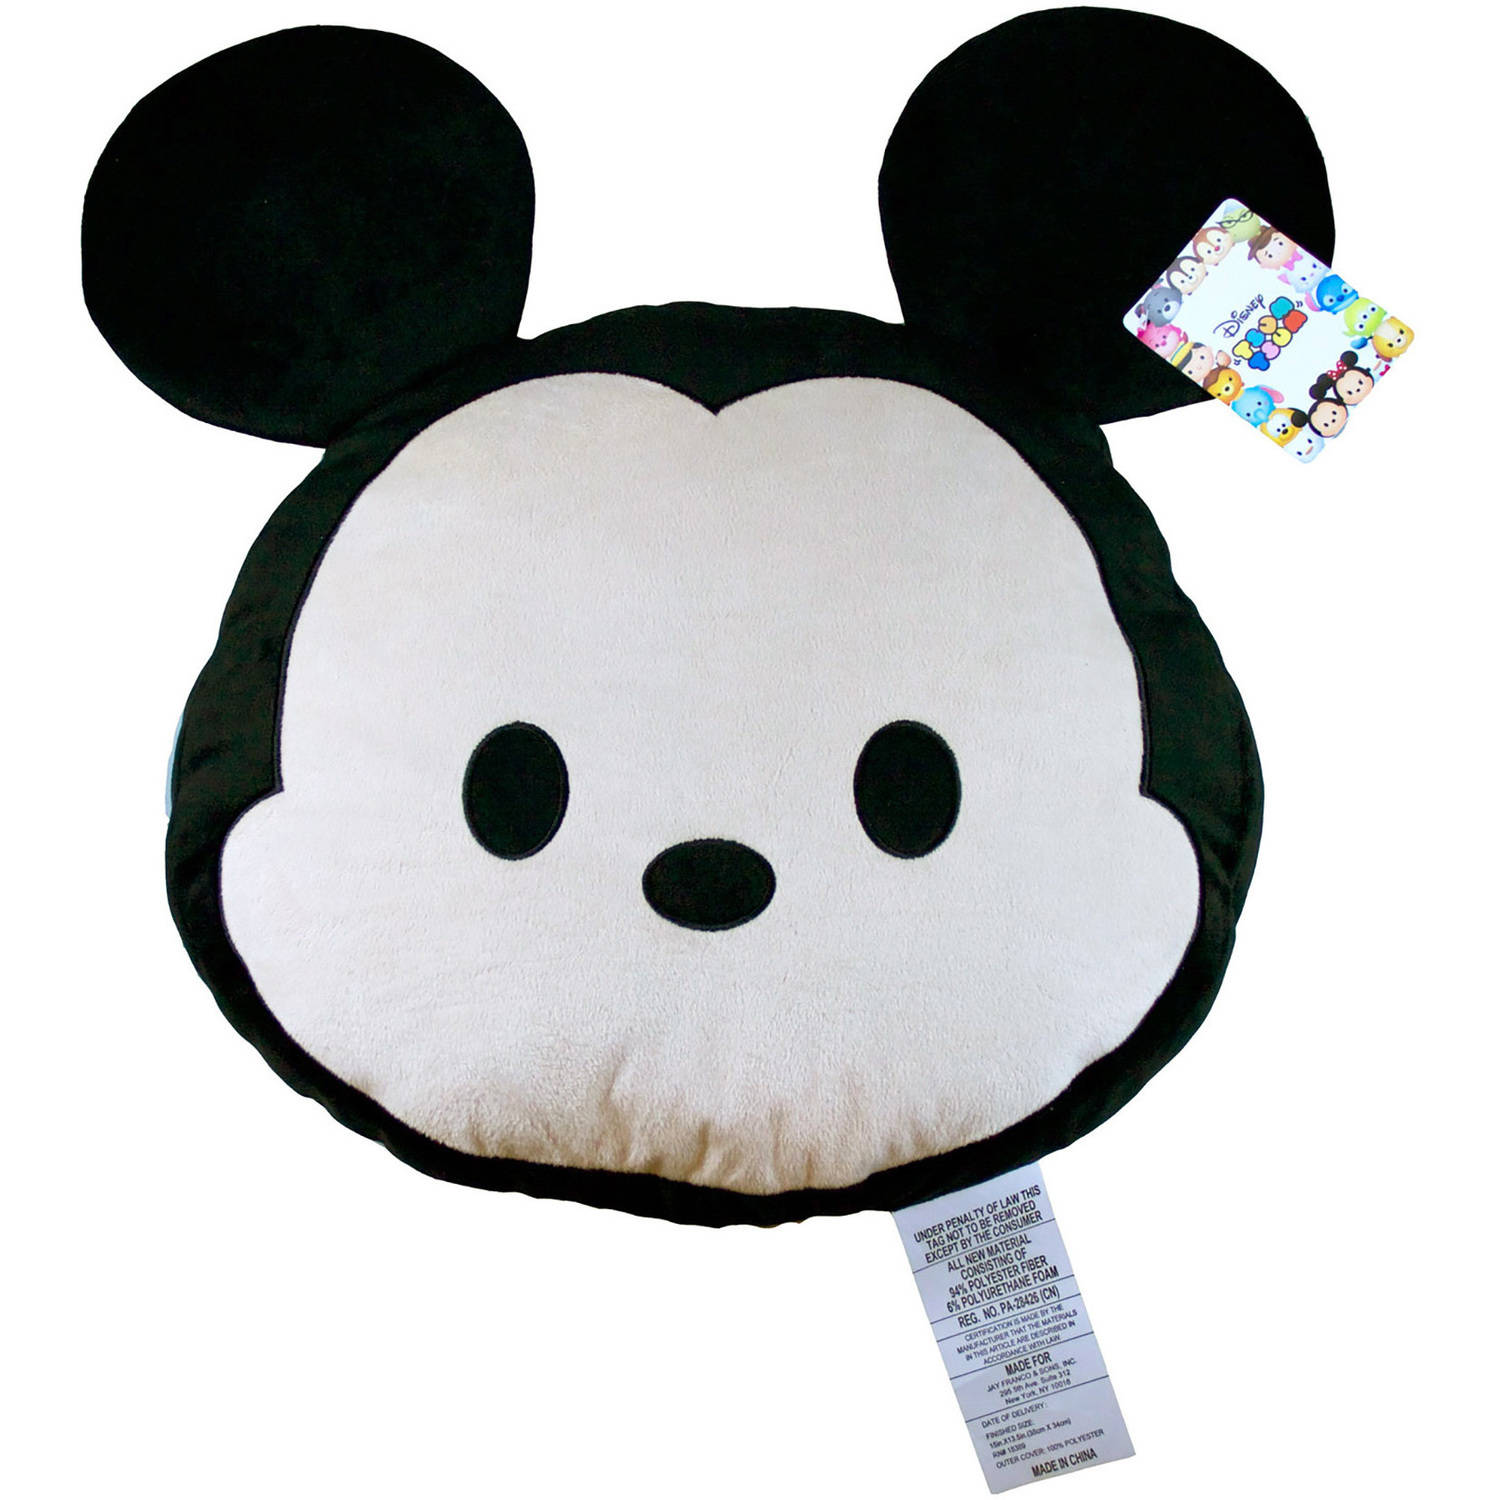 Disney Tsum Tsum Mickey Face Pillow